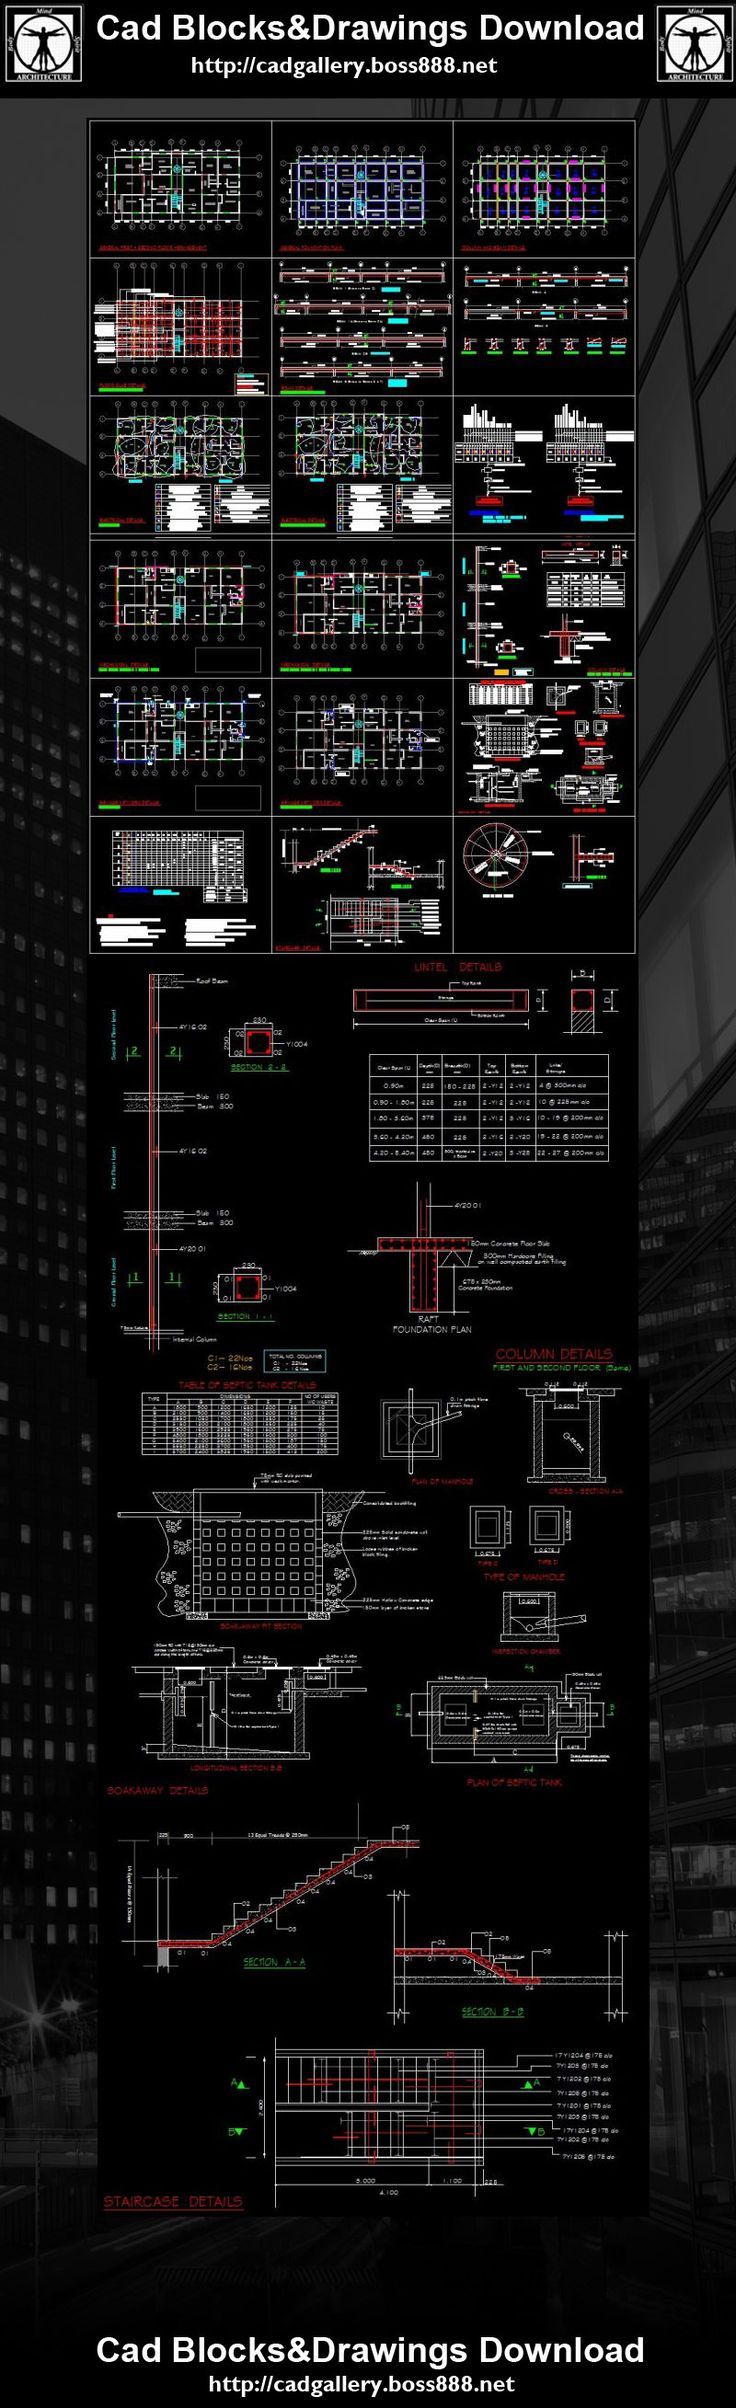 Download Free Cad Blocks and Drawings now!! (https://www.cadblocksdownload.com/)Structure Drawings,Structure Details,Building Details ,CAD drawings downloadable in dwg files